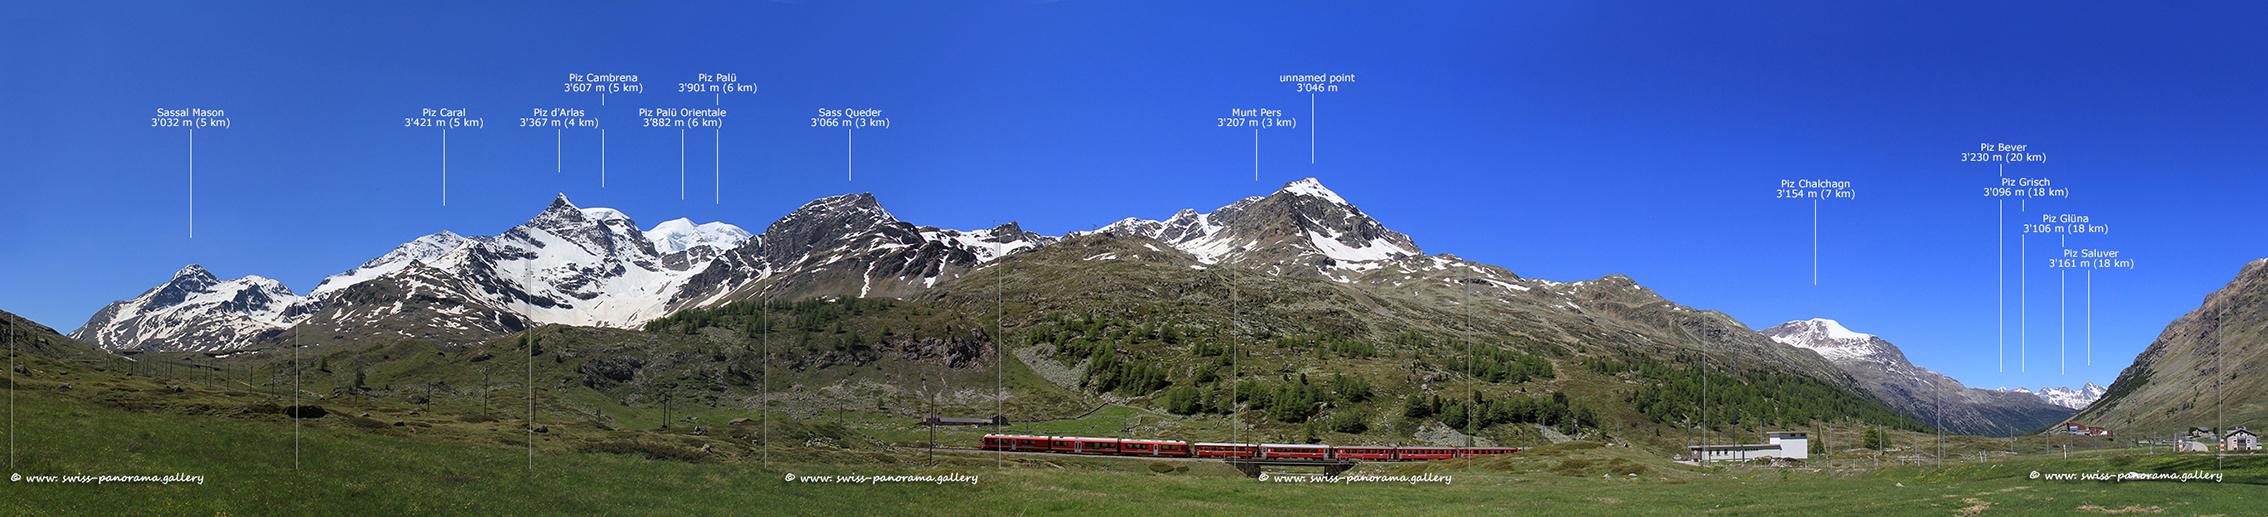 Bernina Pass Panorama